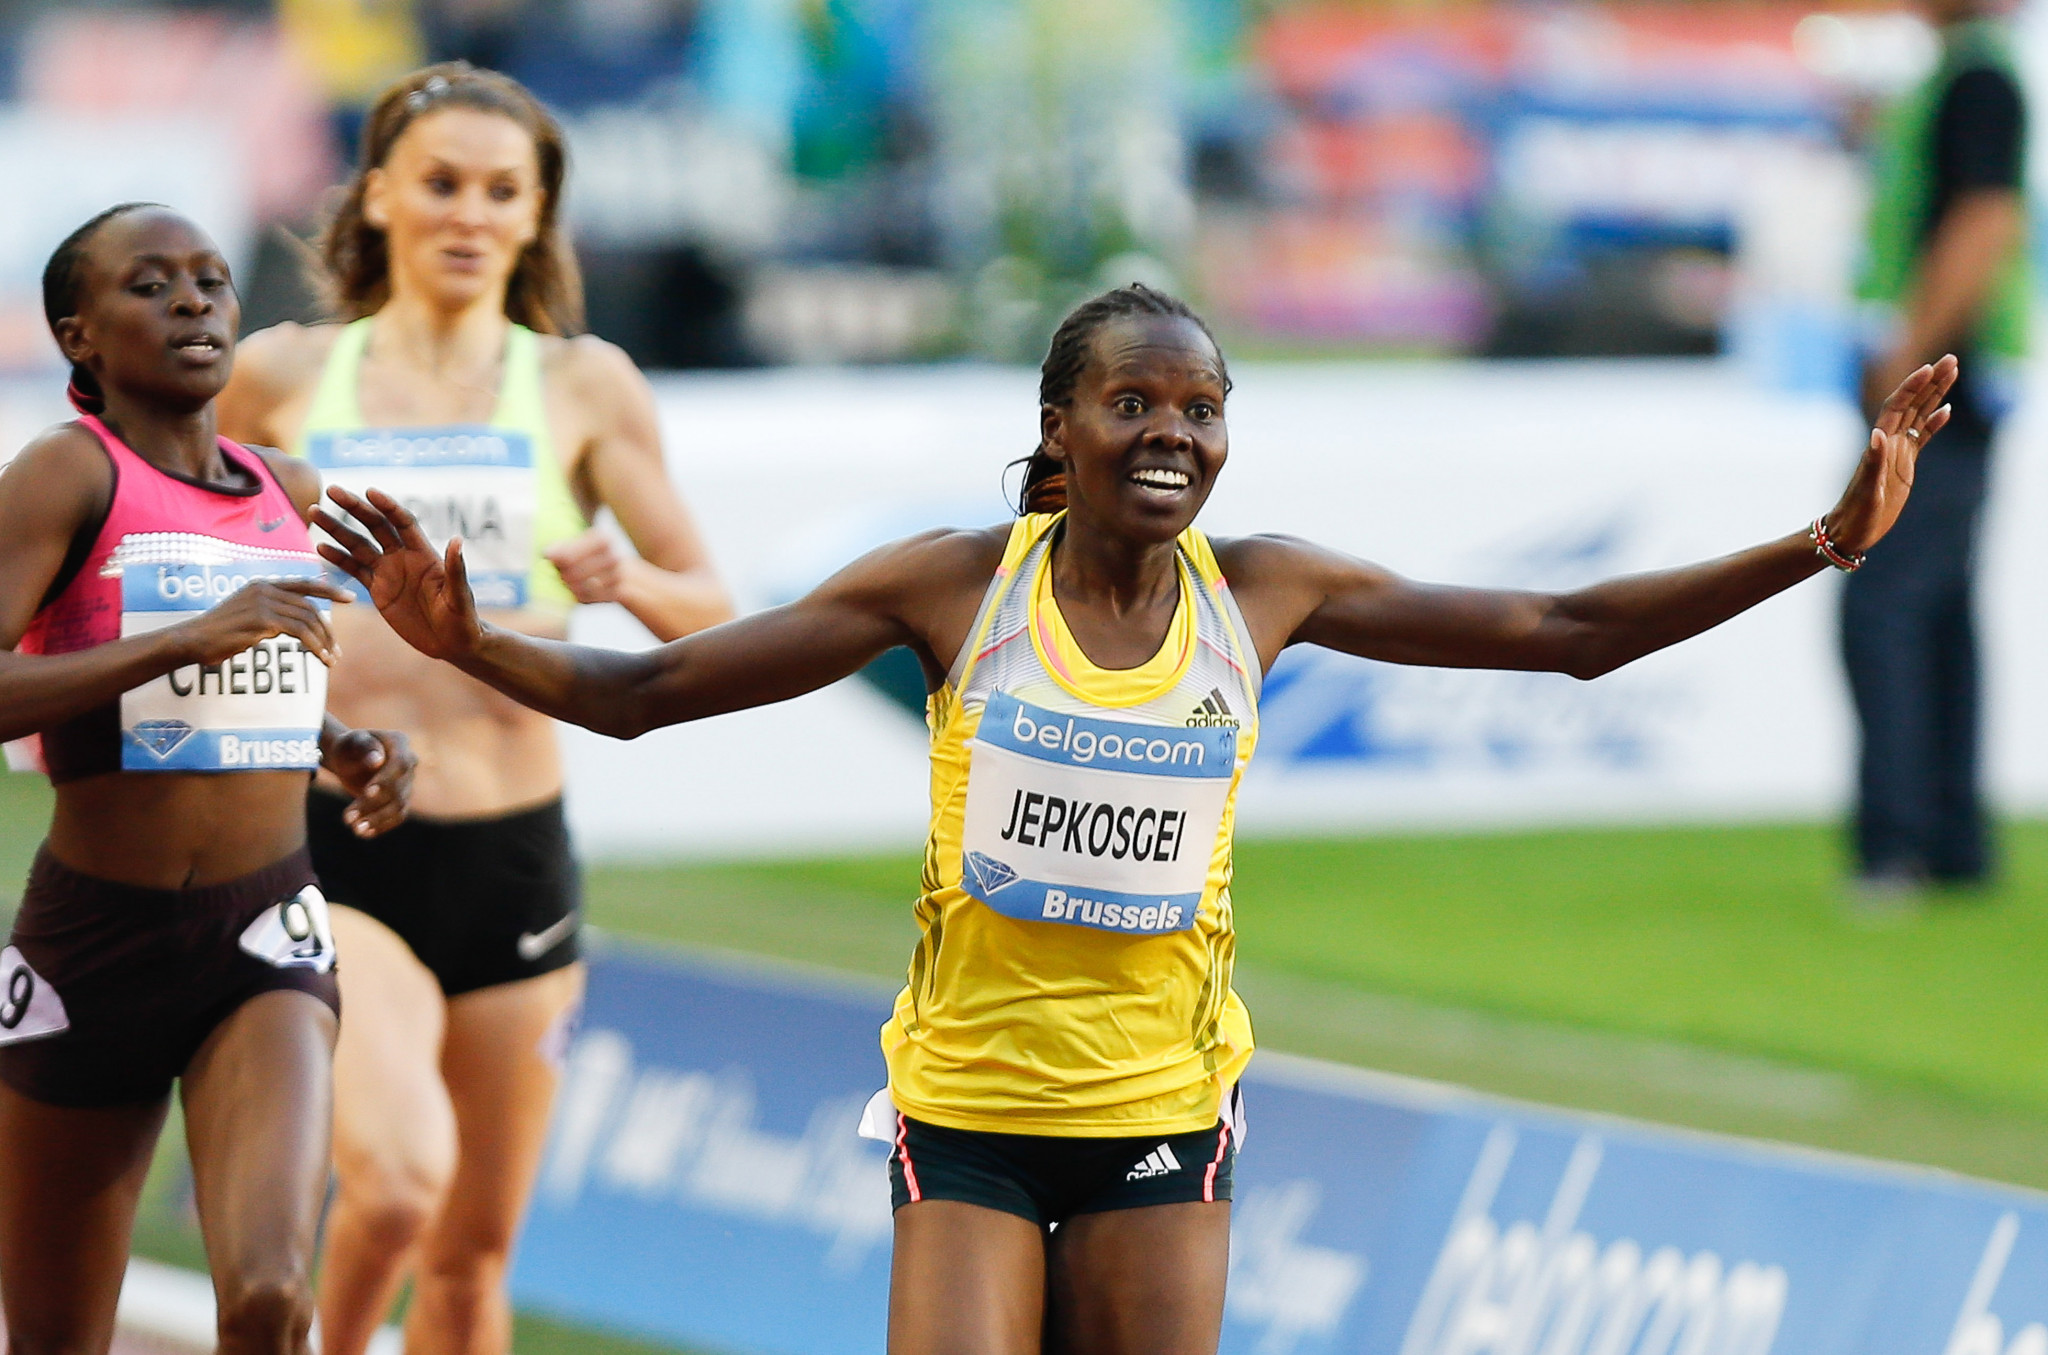 Jepkosgei given three-year ban after faking car crash to explain whereabouts failure